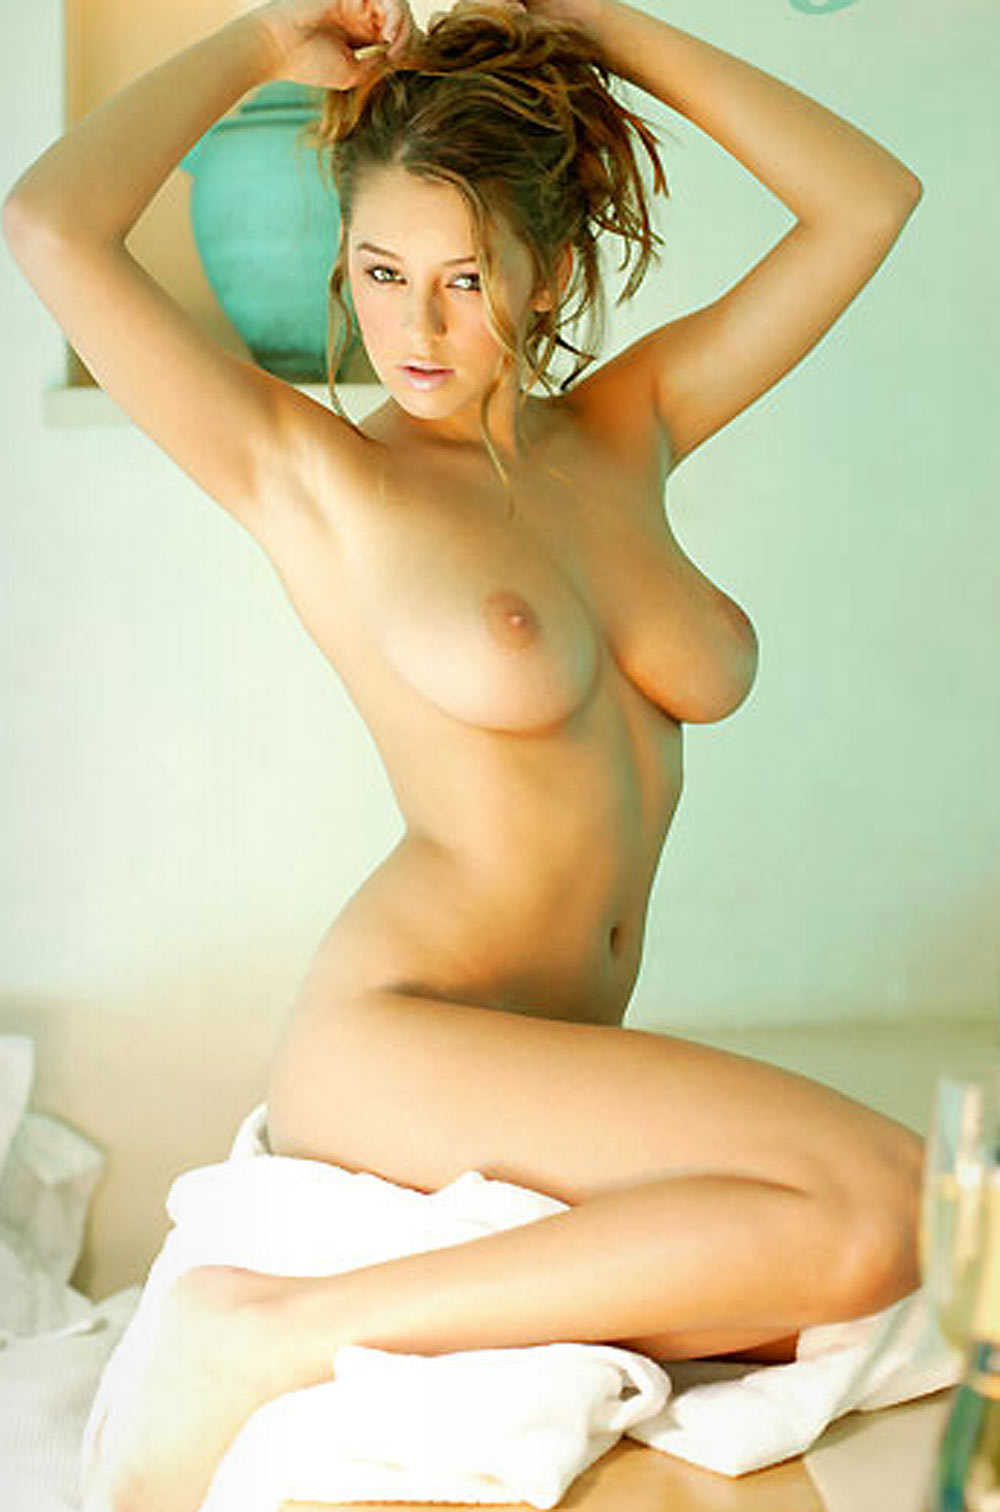 cassandra petersons nude photos